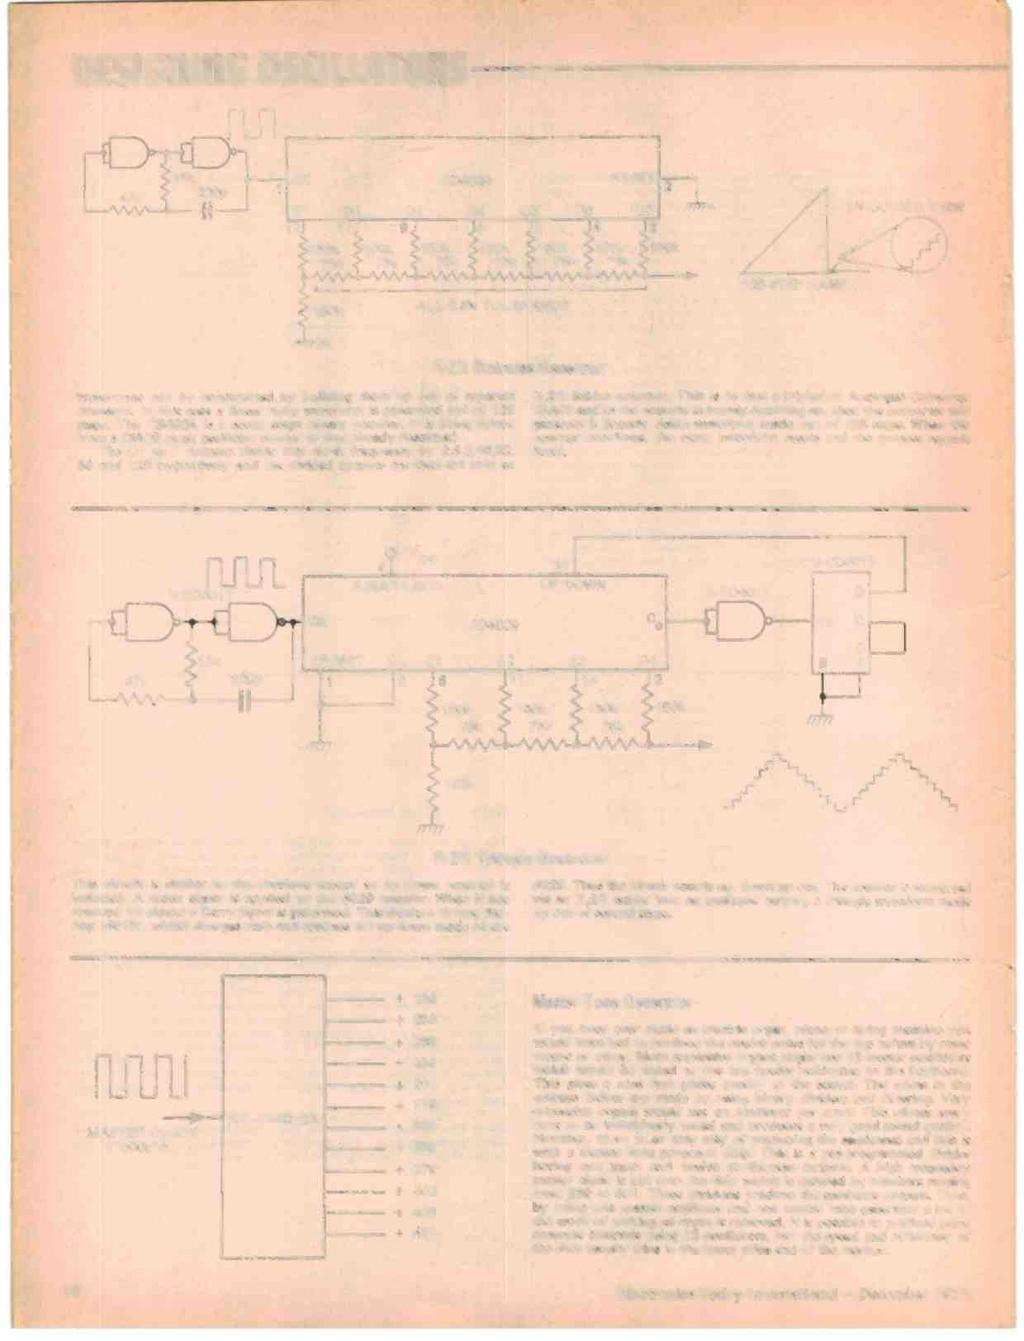 Already Knew About Tape Recording Assumed You 4i What Everybody Circuit Diagram Of Uniline Ups Designing Oscillators Z 15k 1 4 K 220p Ck Q1 12 Q2 11